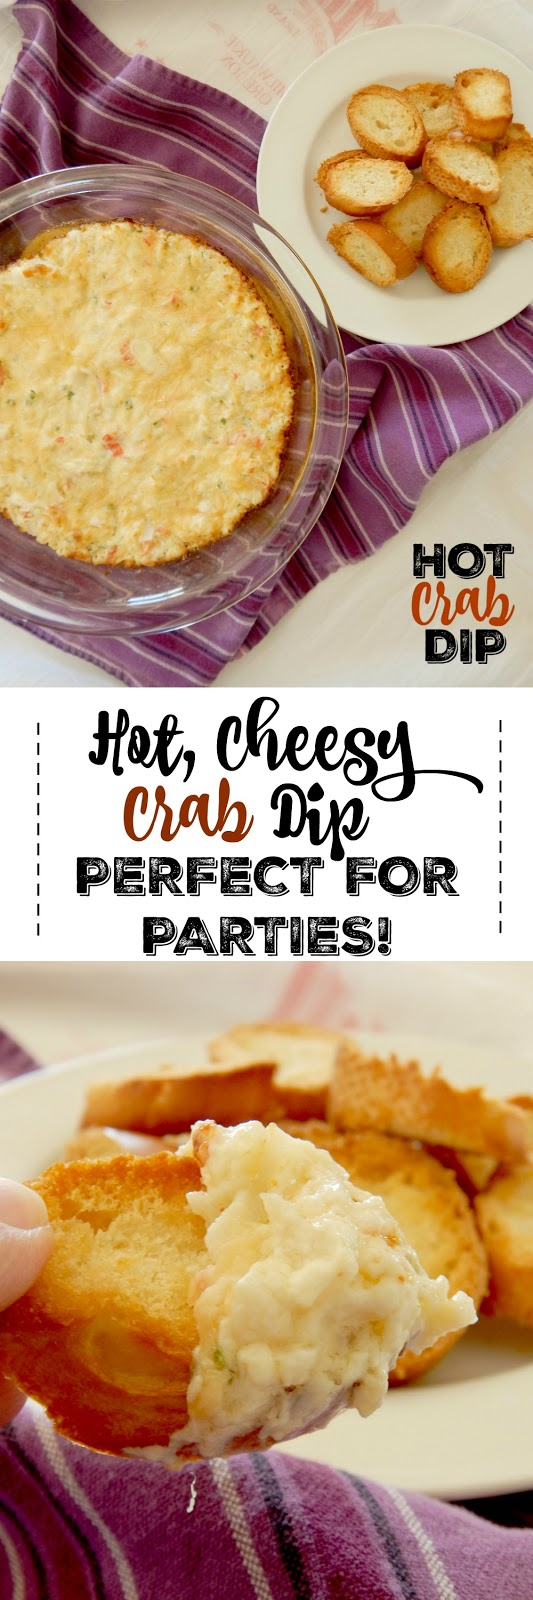 Hot Crab Dip...the perfect hot party dip!  Cheesy, onion-y and loaded with lump crab meat, this party dip will disappear quickly. (sweetandsavoryfood.com)